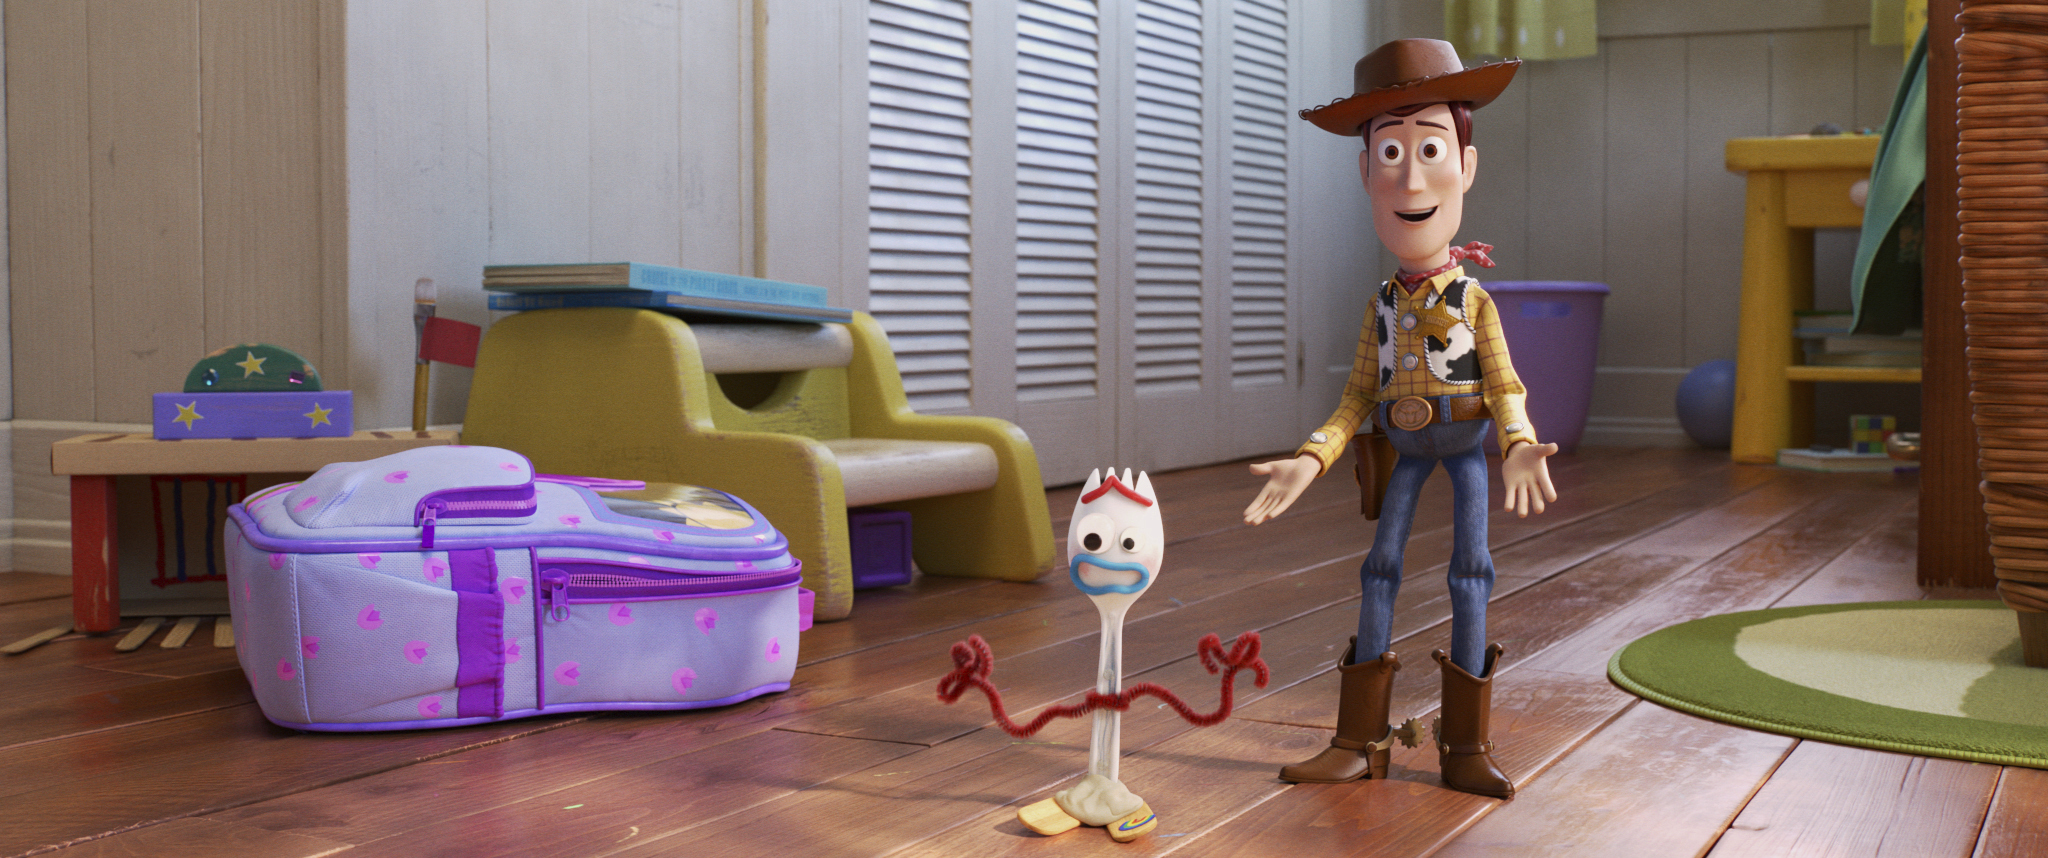 Film Review Toy Story 4_1561155834536